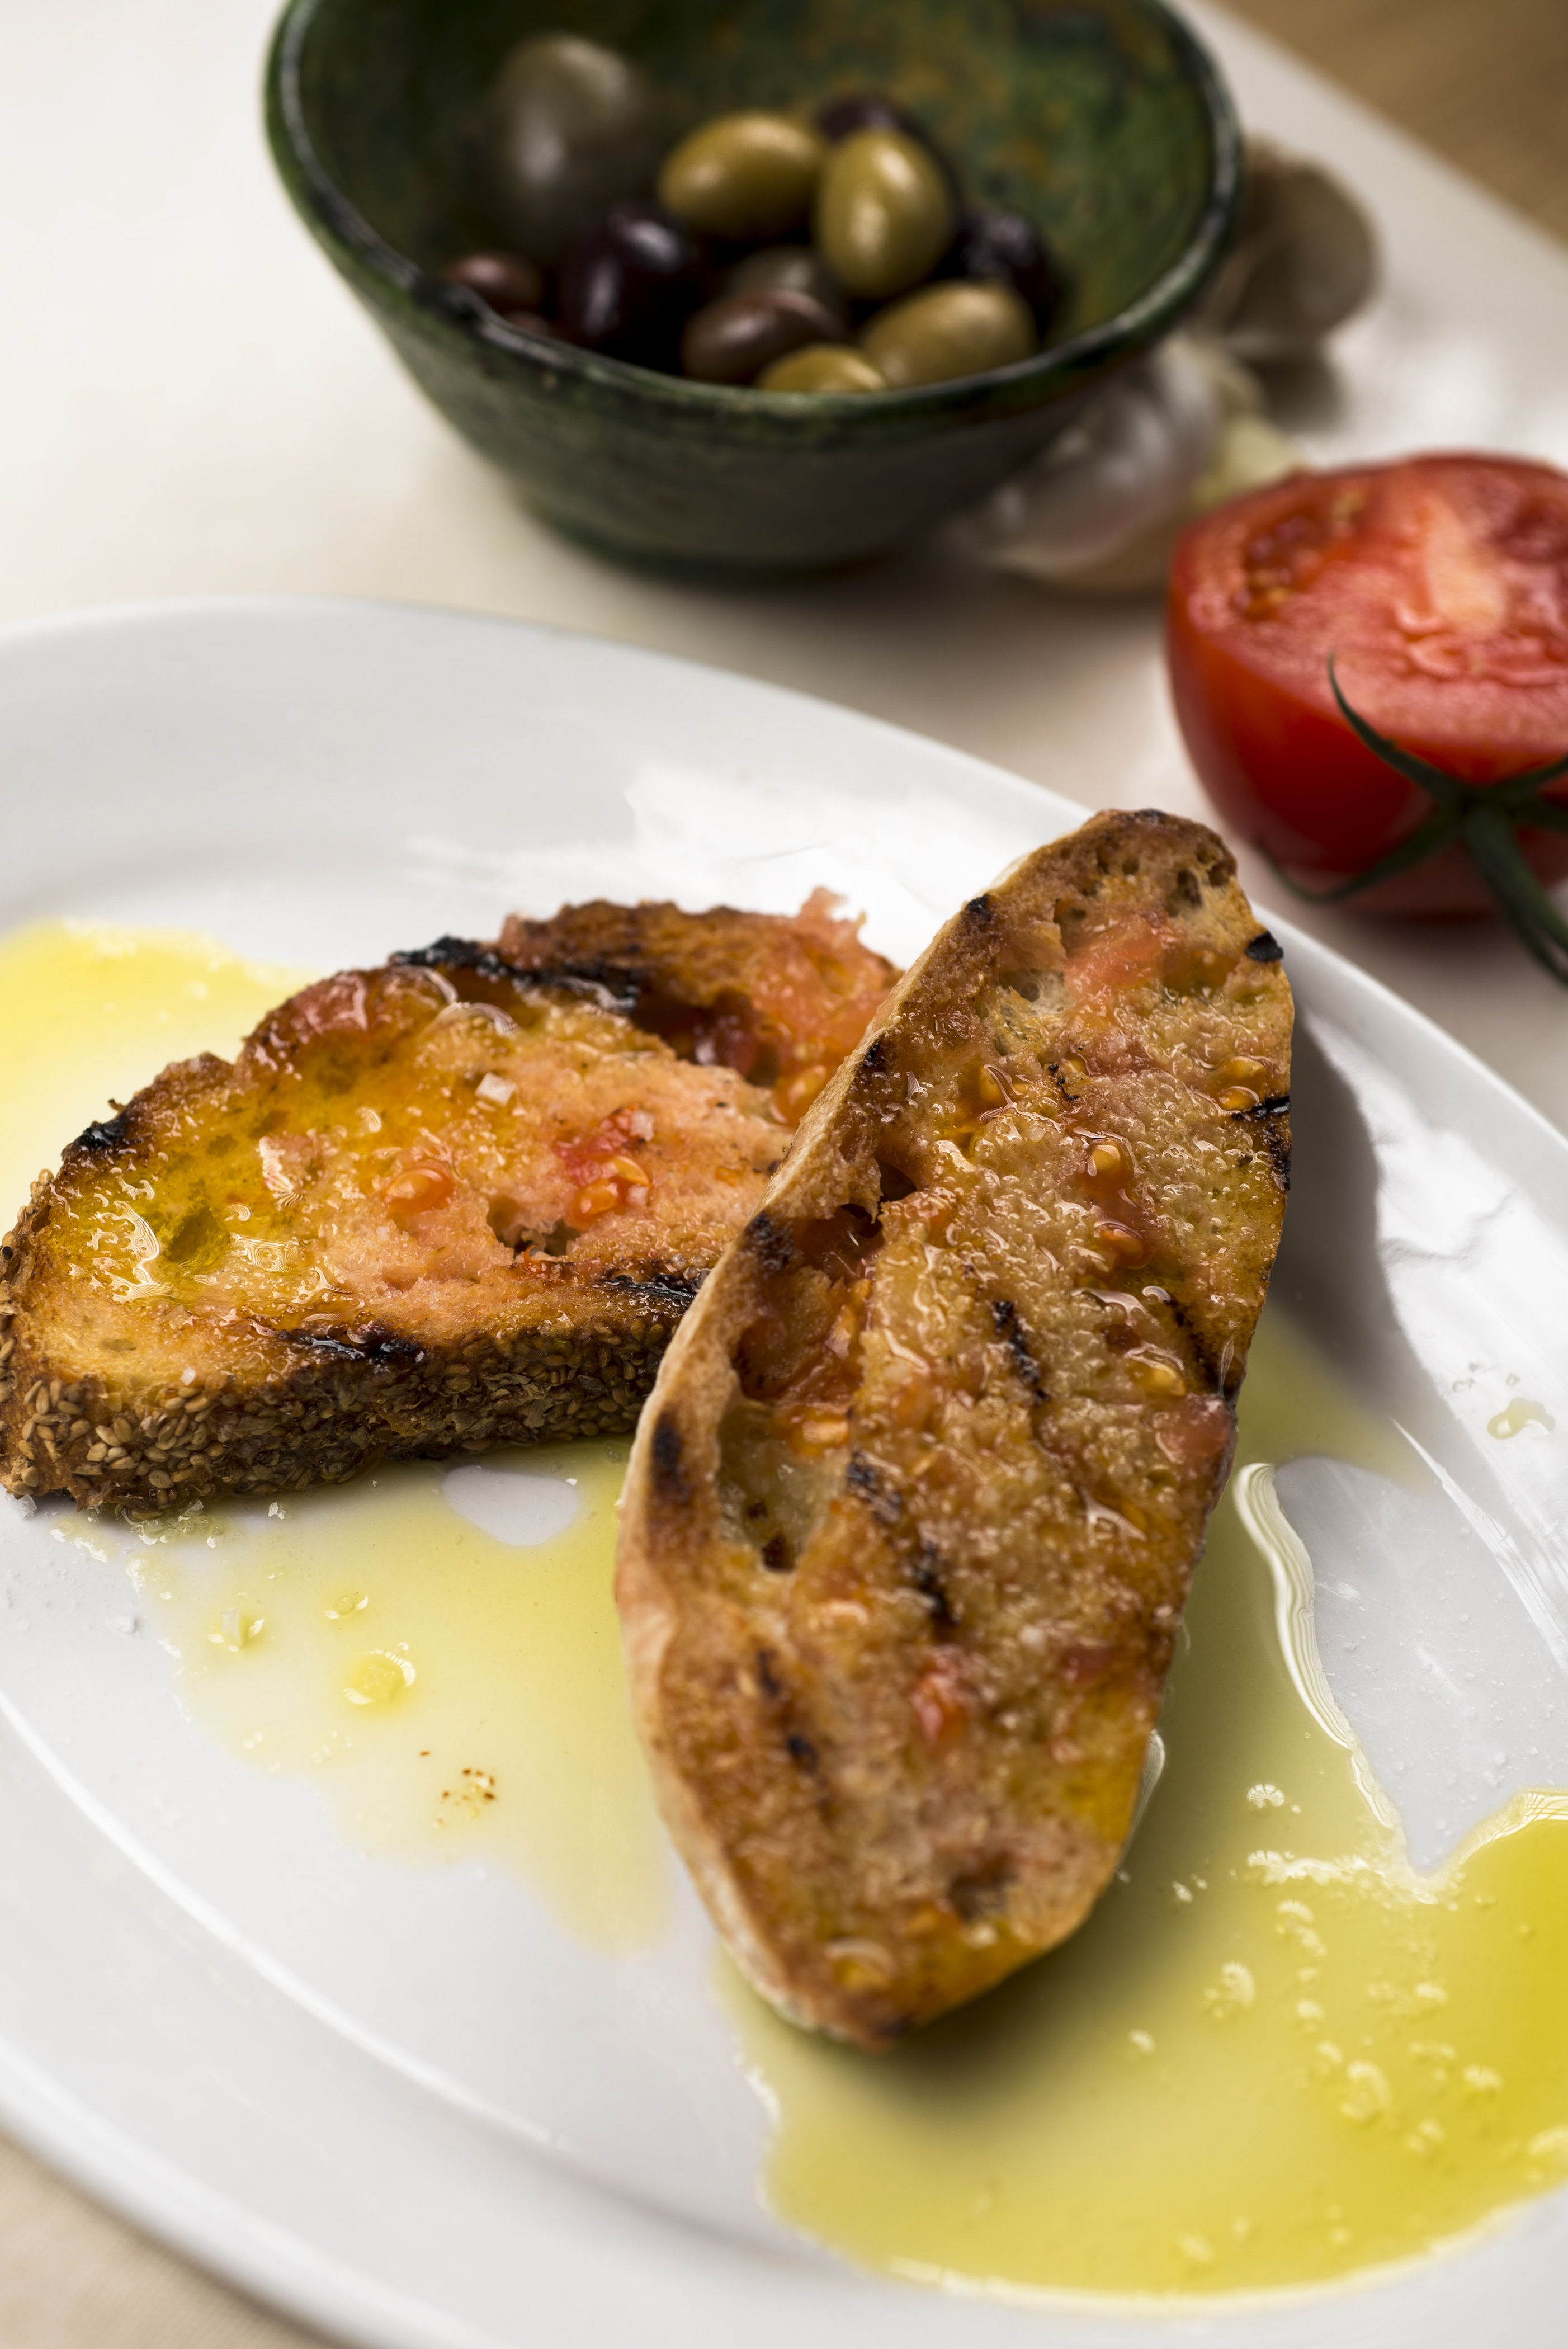 Grilled bread is rubbed with garlic and tomato, and drizzled with olive oil.